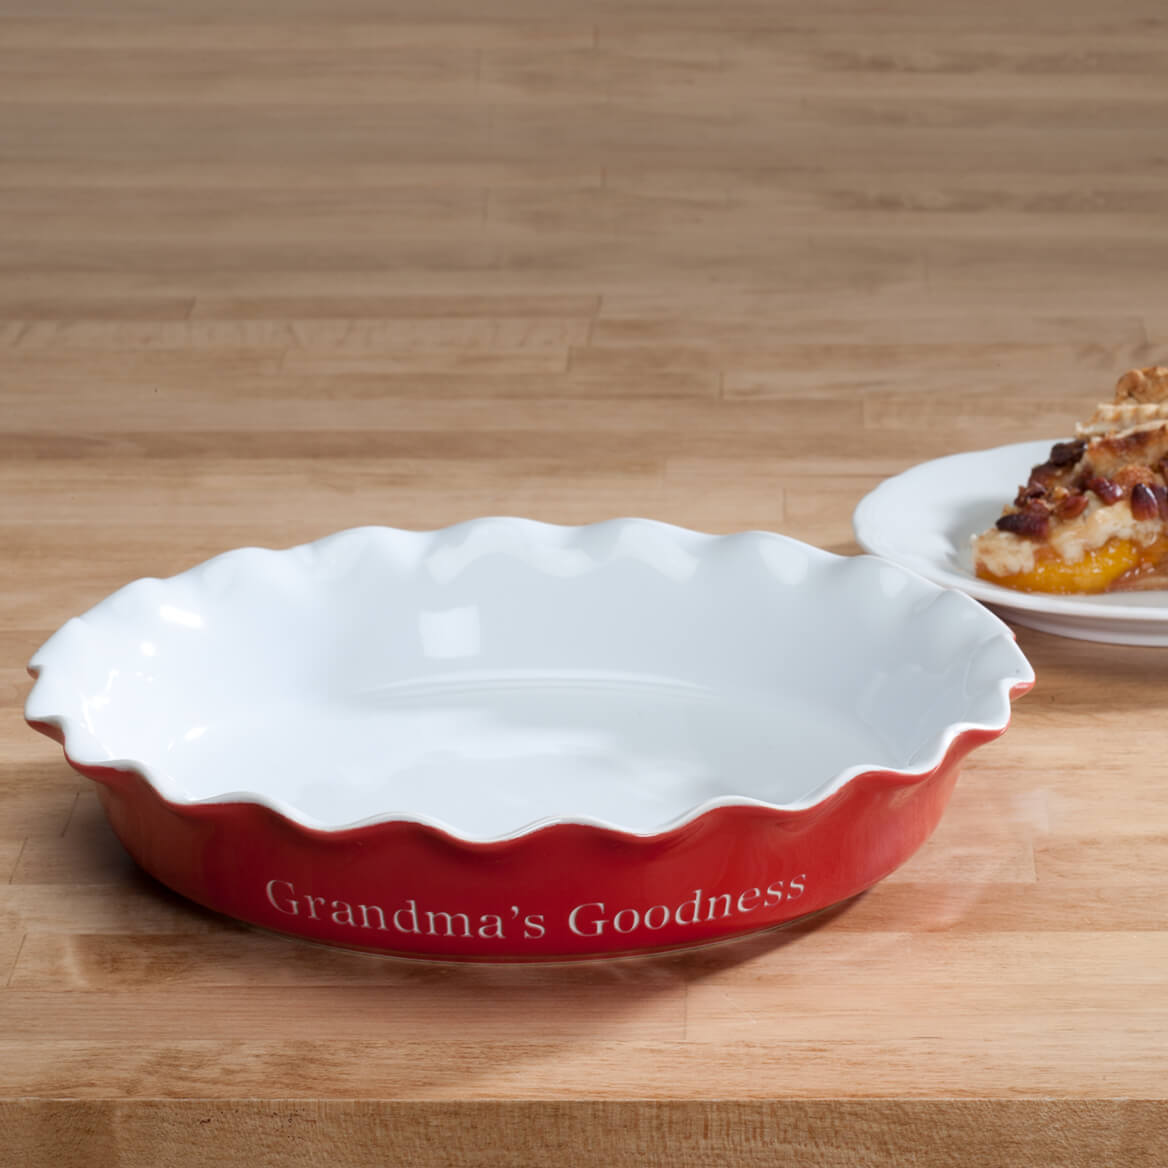 Personalized Red Ceramic Pie Dish & Personalized Red Ceramic Pie Dish - Miles Kimball